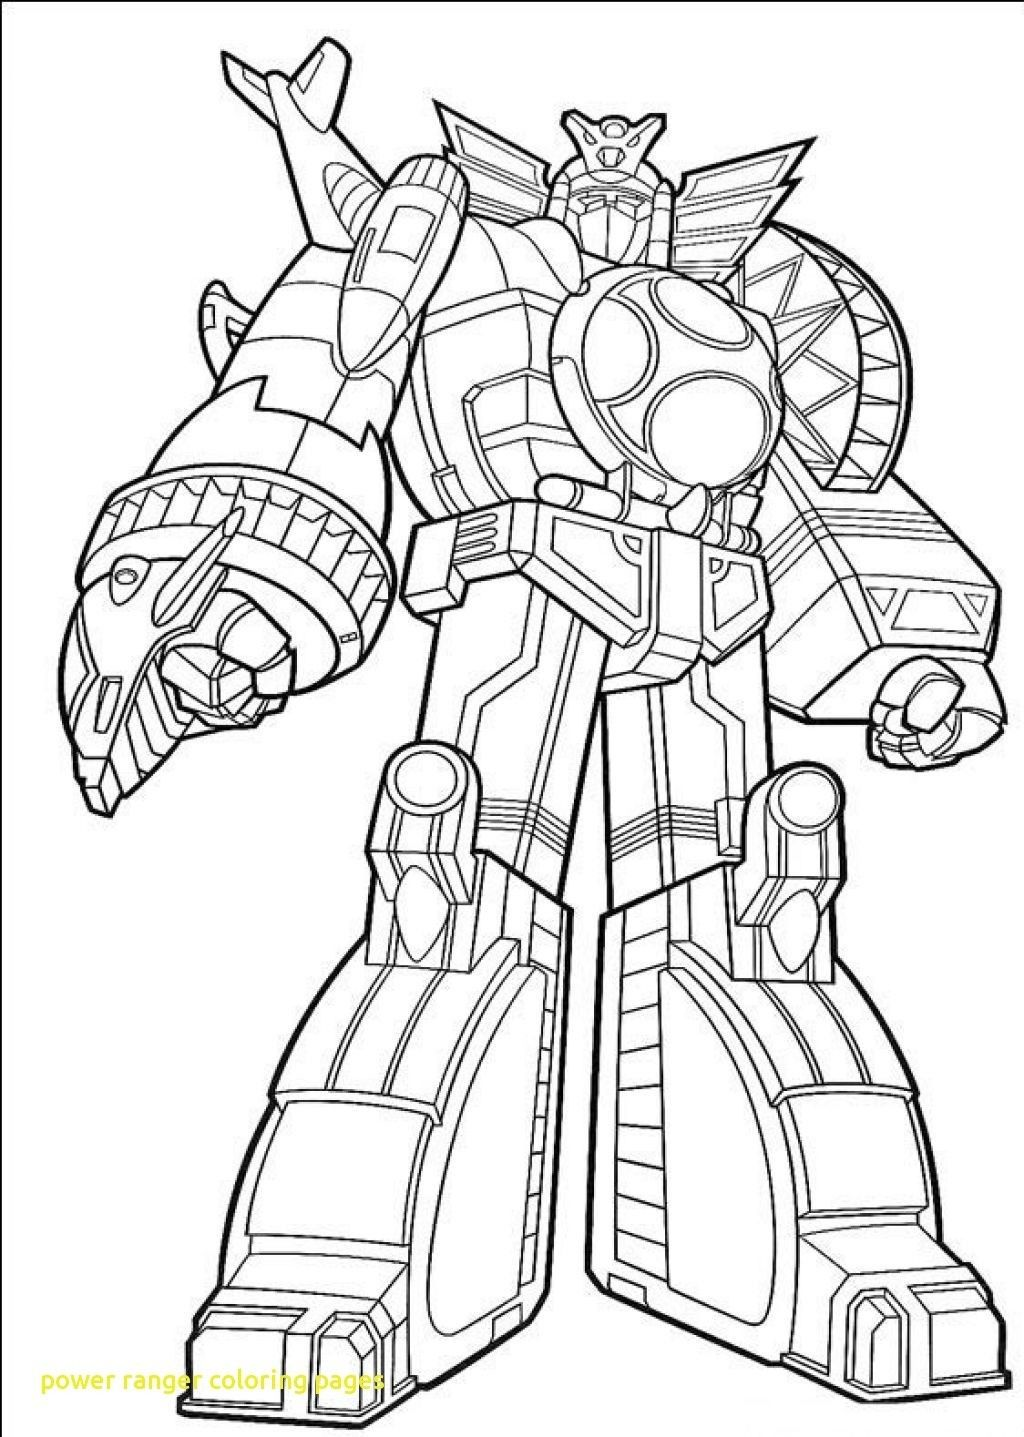 Princess Power Ranger Coloring Pages Power Rangers Coloring